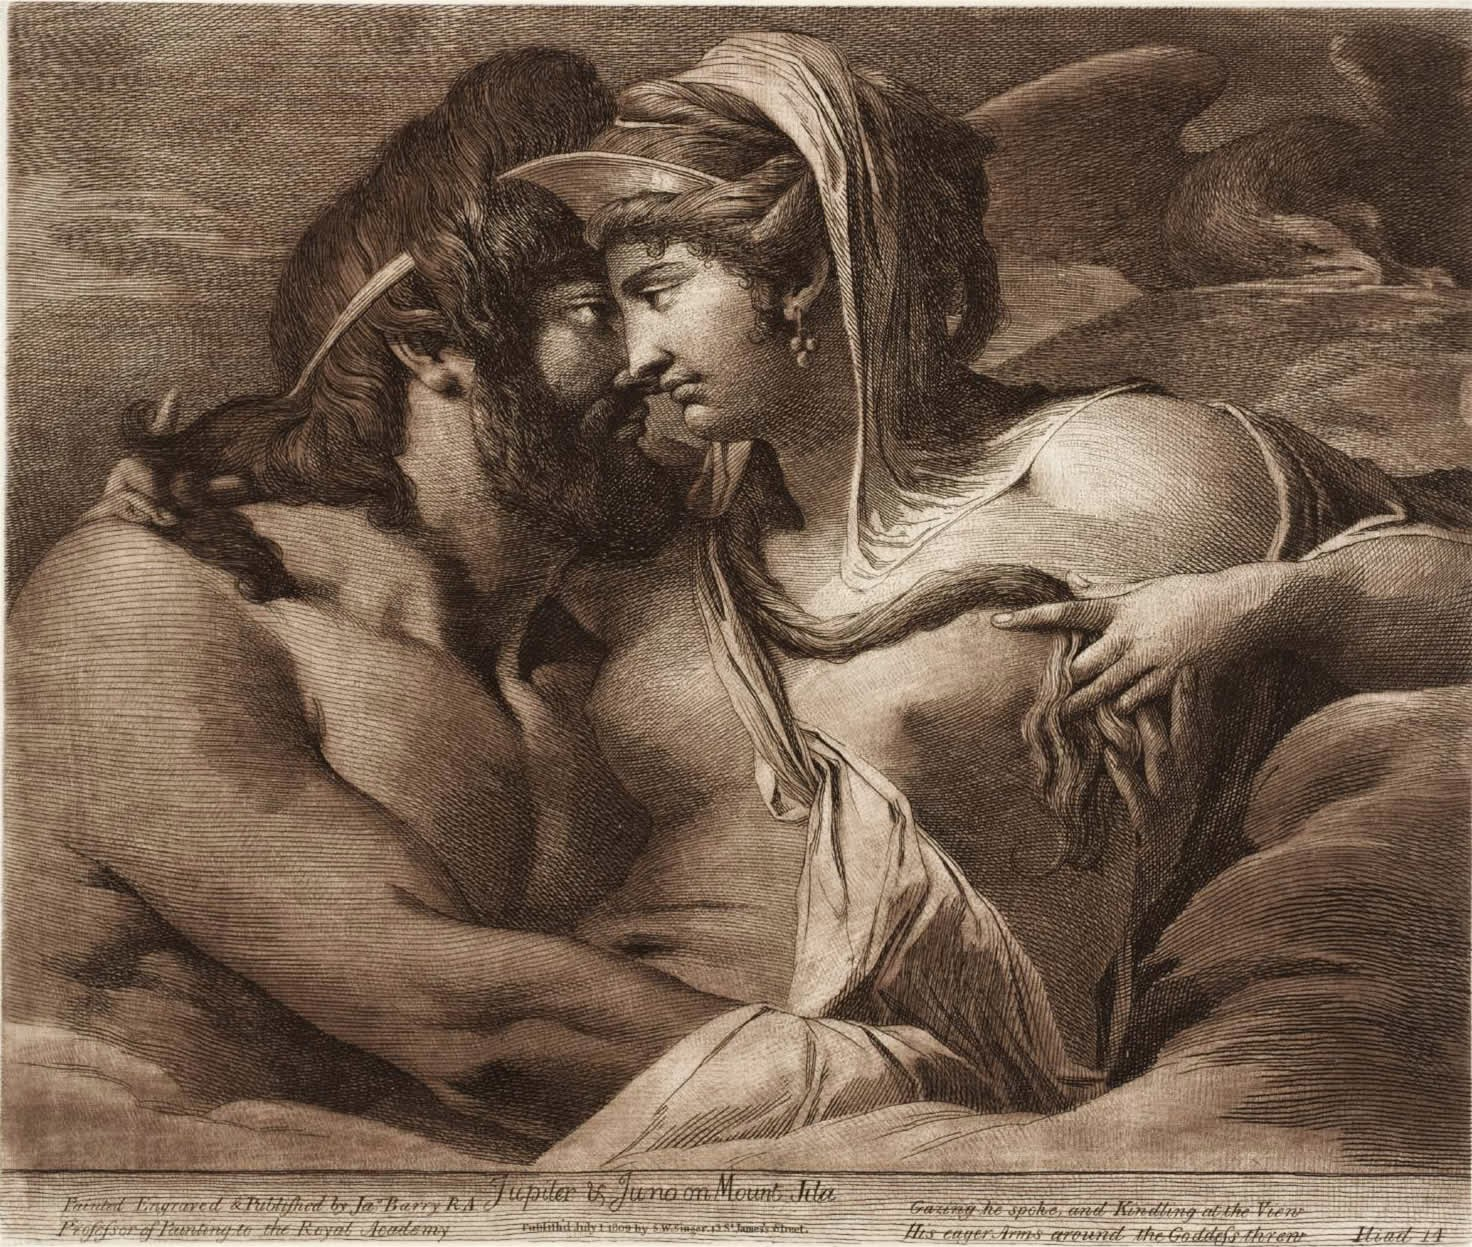 hera and zeus relationship in the iliad